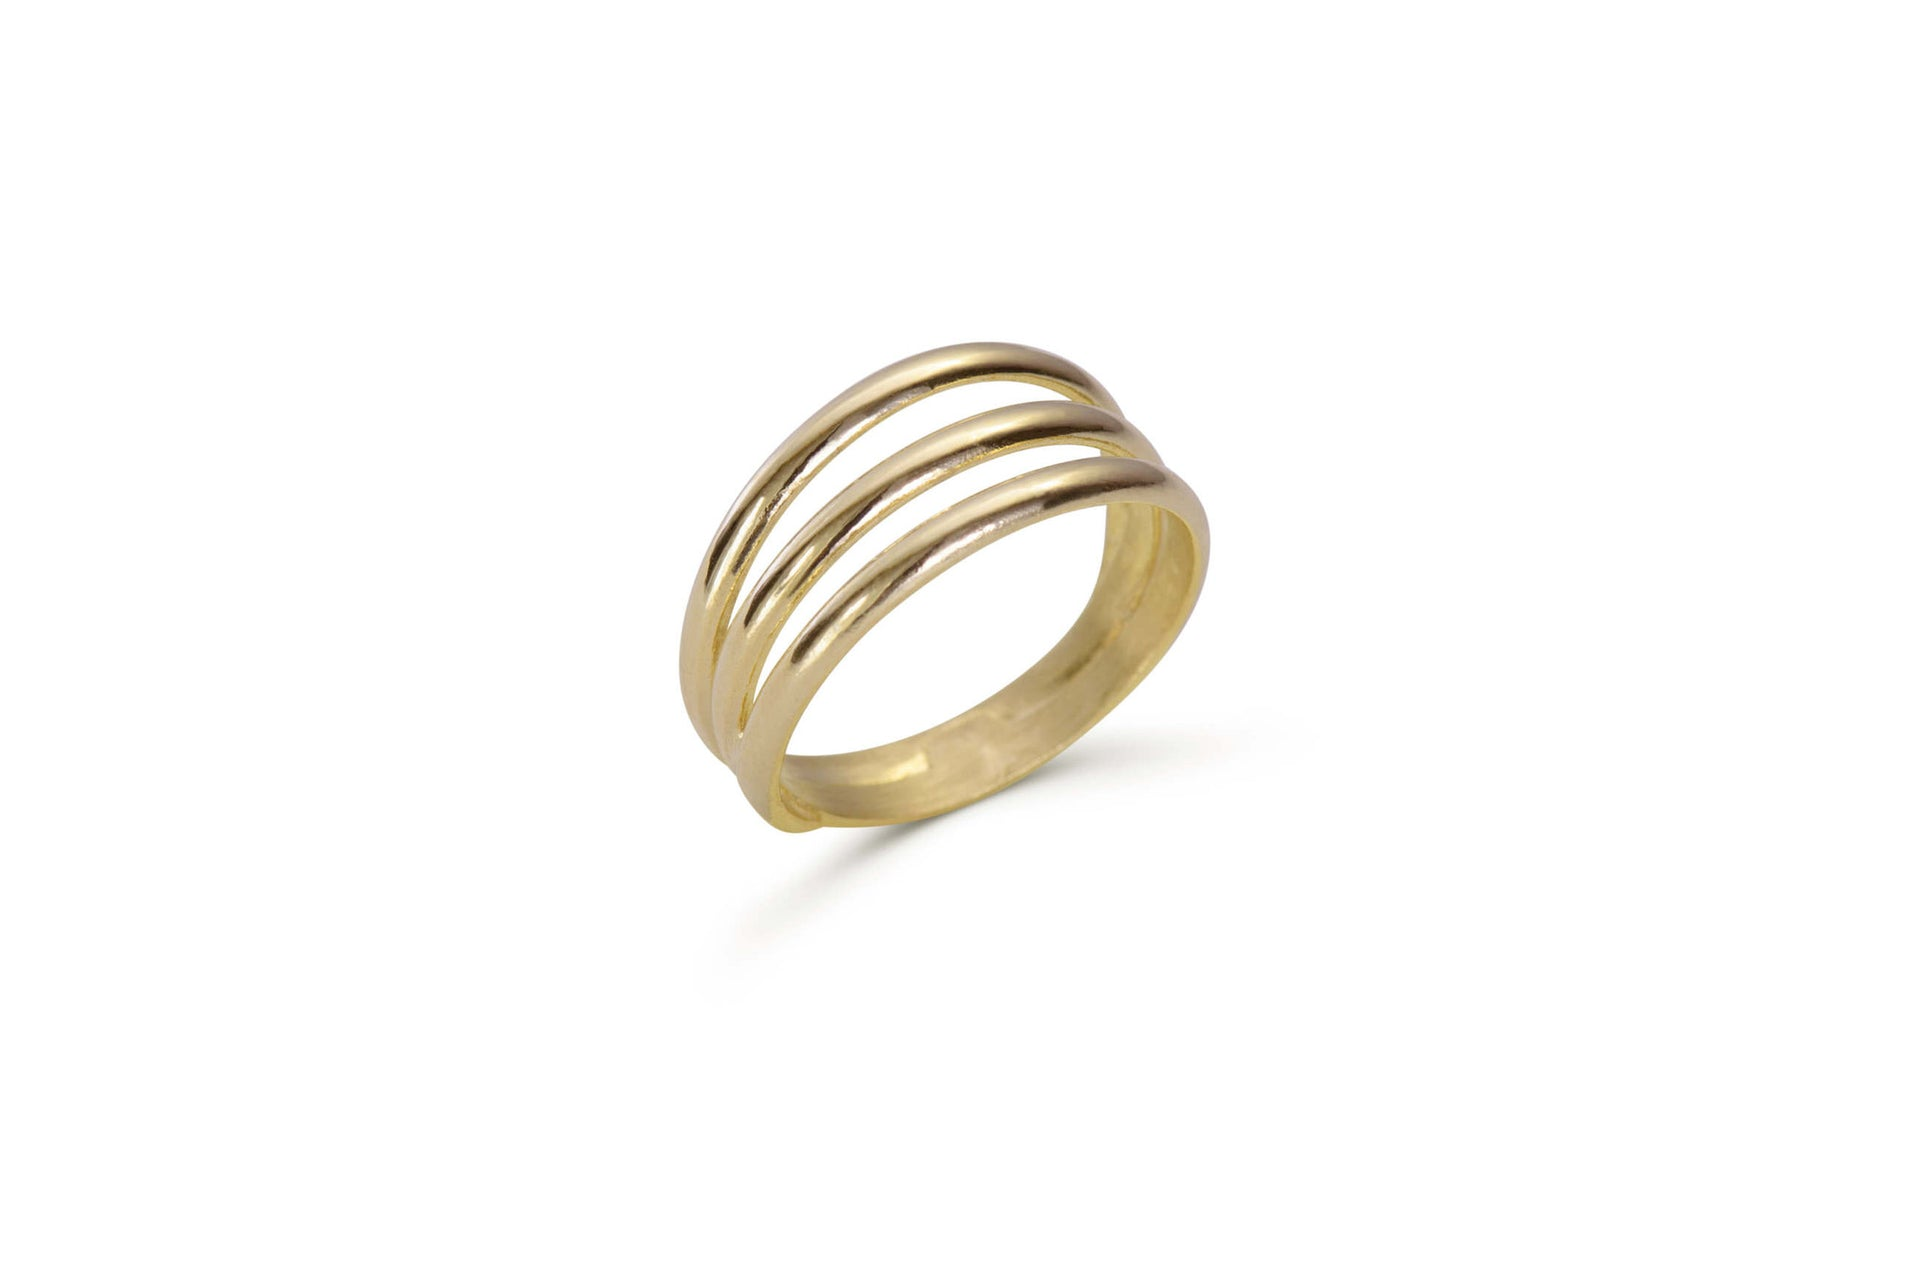 Signature Trio ring solid yellow gold by KarenAsh New York